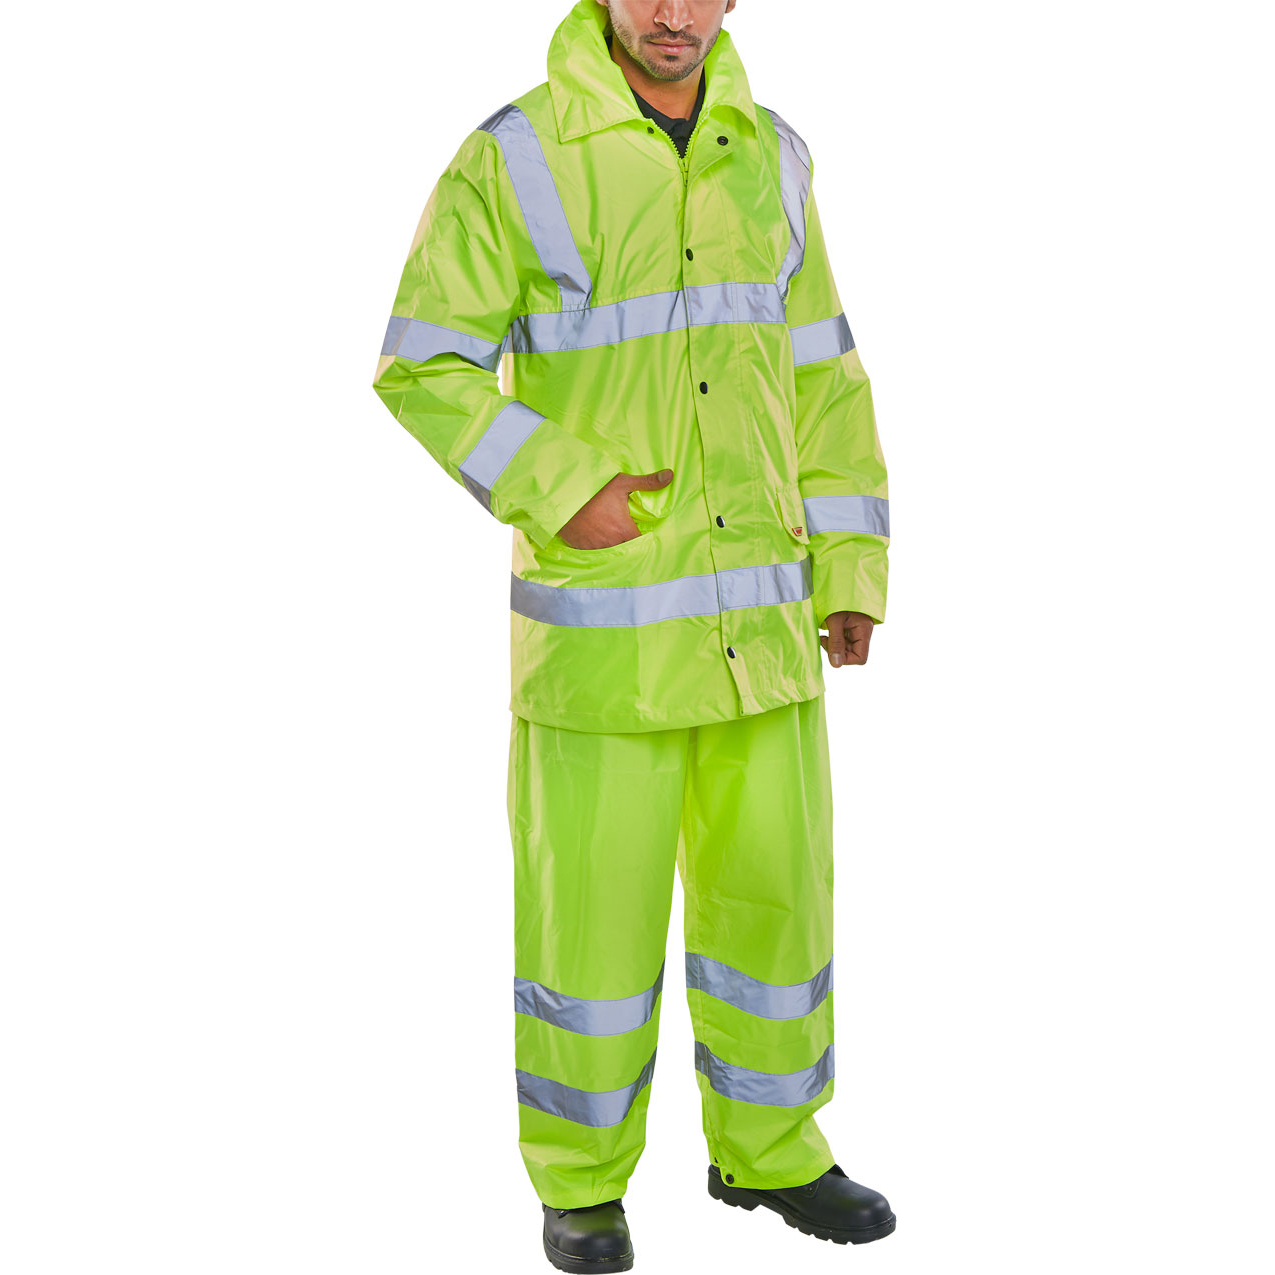 BSeen Hi-Vis L/Wt Suit Jkt/Trs EN ISO 20471 EN 343 XL Saturn Yellow Ref TS8SYXL *Up to 3 Day Leadtime*